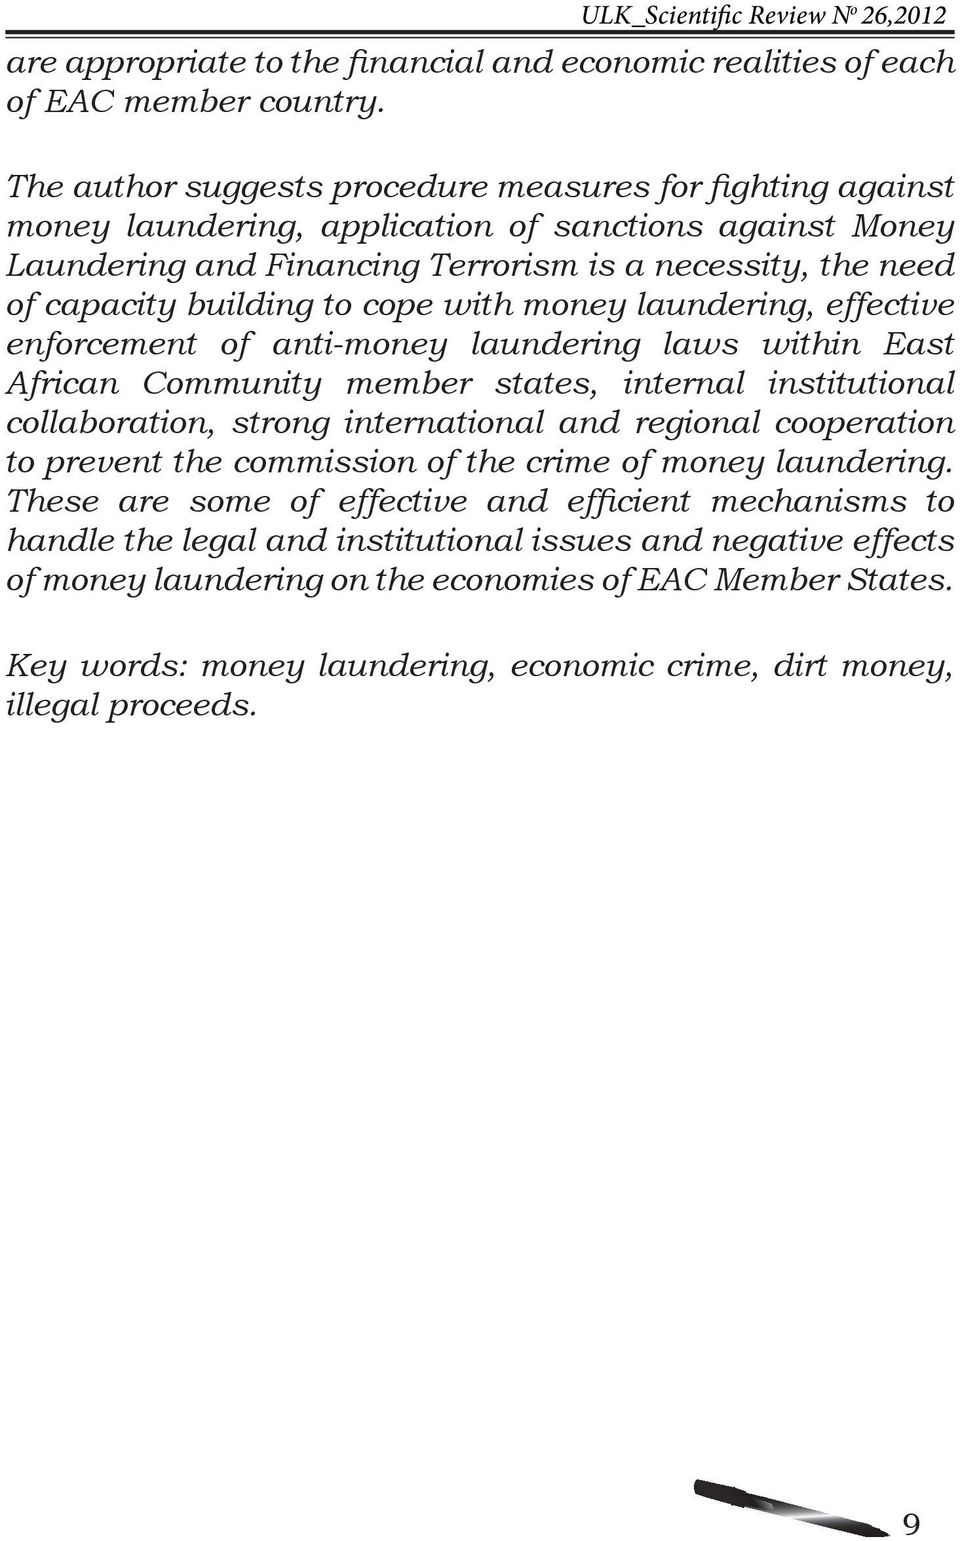 to cope with money laundering, effective enforcement of anti-money laundering laws within East African Community member states, internal institutional collaboration, strong international and regional